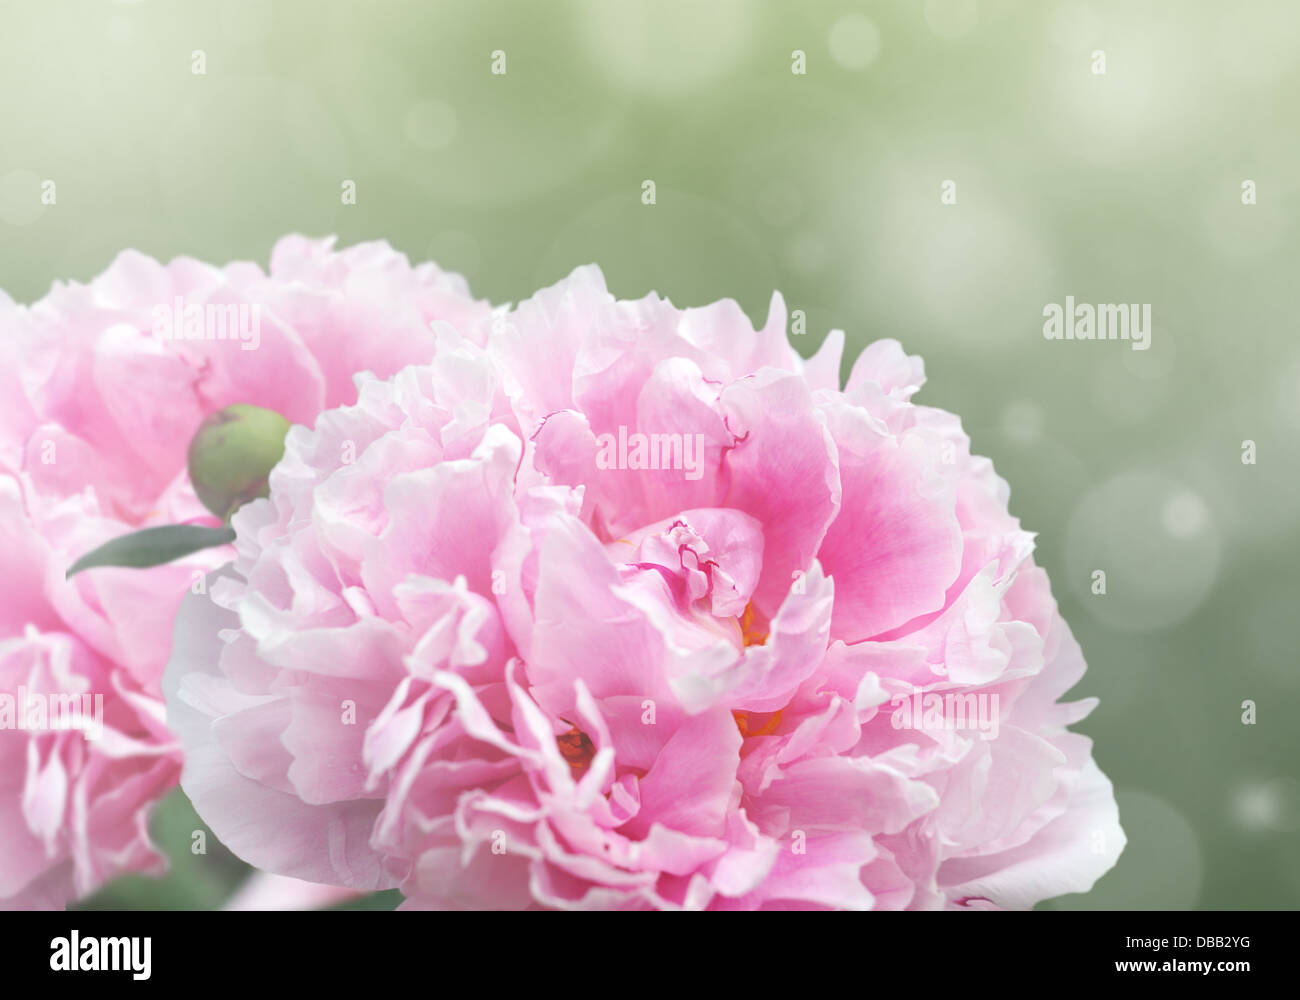 Beautiful dreamy floral background with pink peony flowers, bokeh and light effects. - Stock Image